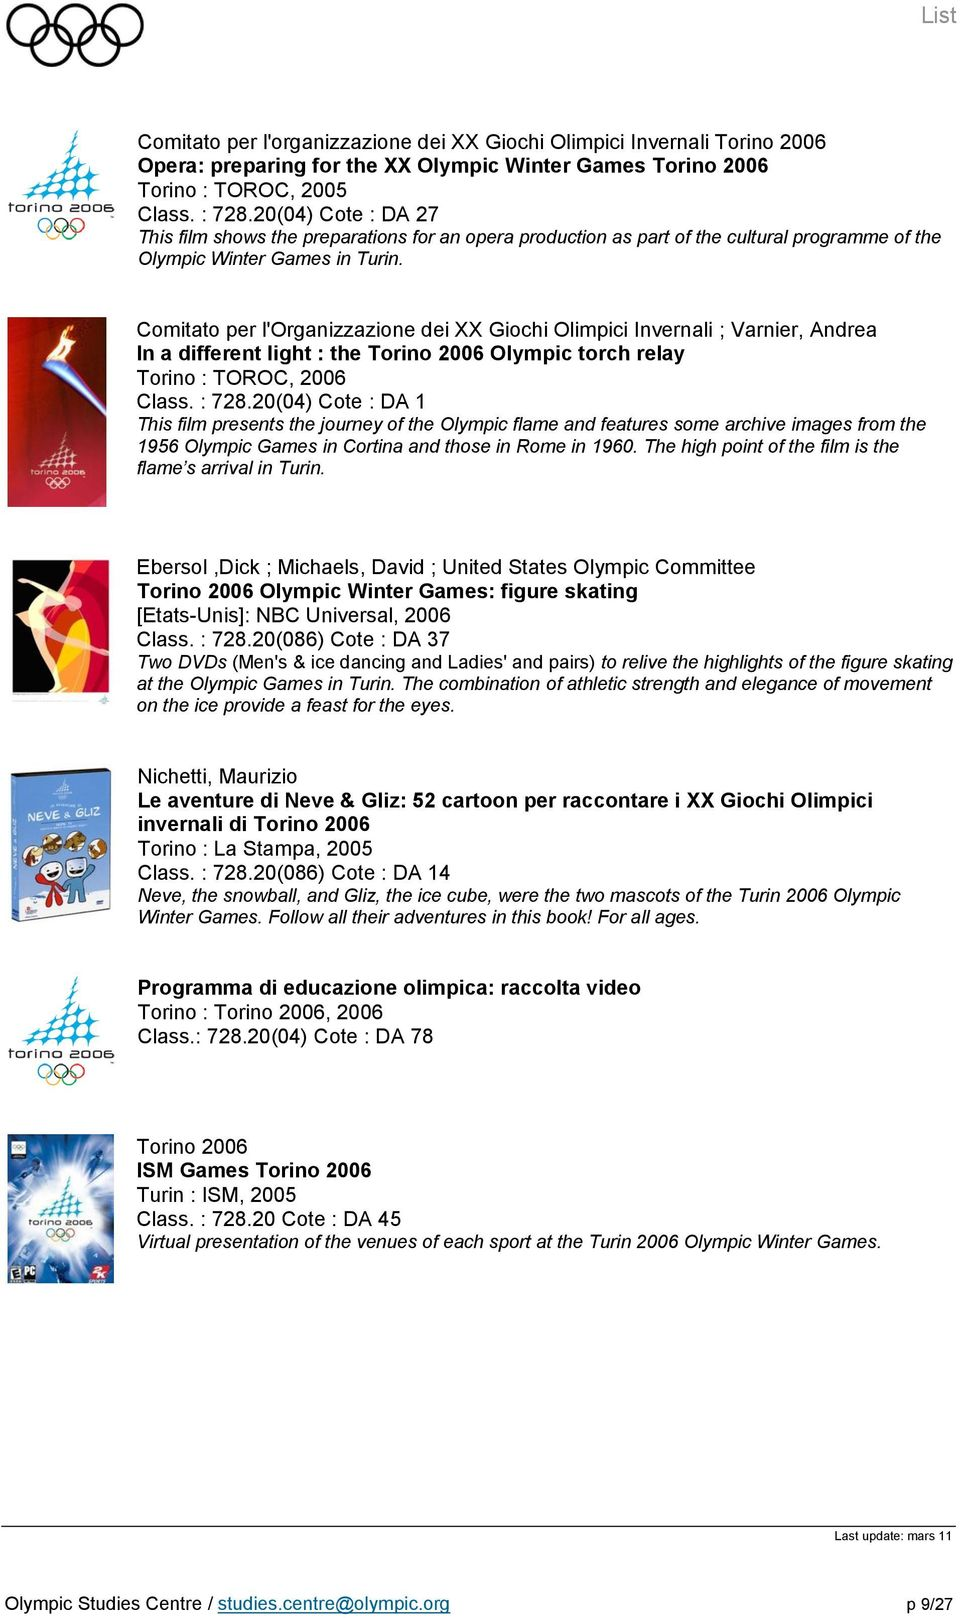 Olympic Studies Centre. DVDs. List. Discover the complete list of ...